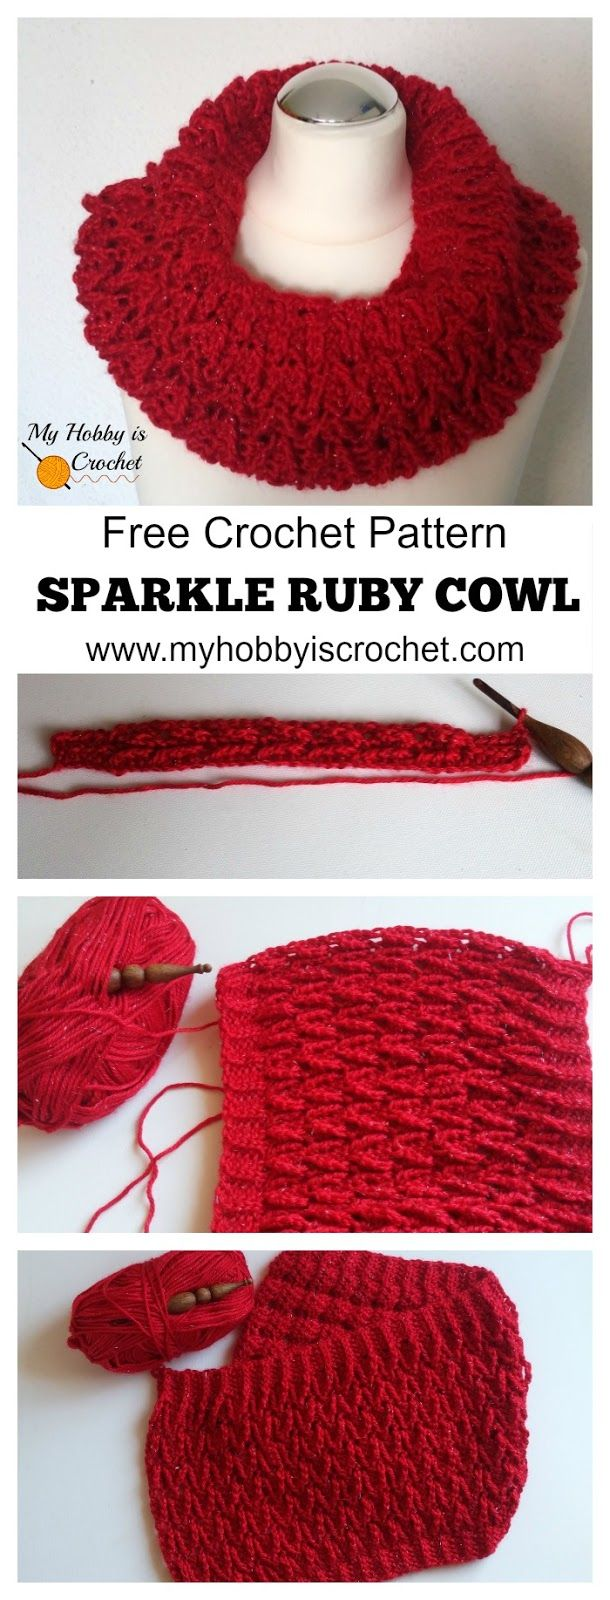 Sparkle Ruby Cowl - #freecrochetpattern with #tutorial on myhobbyiscrochet.com